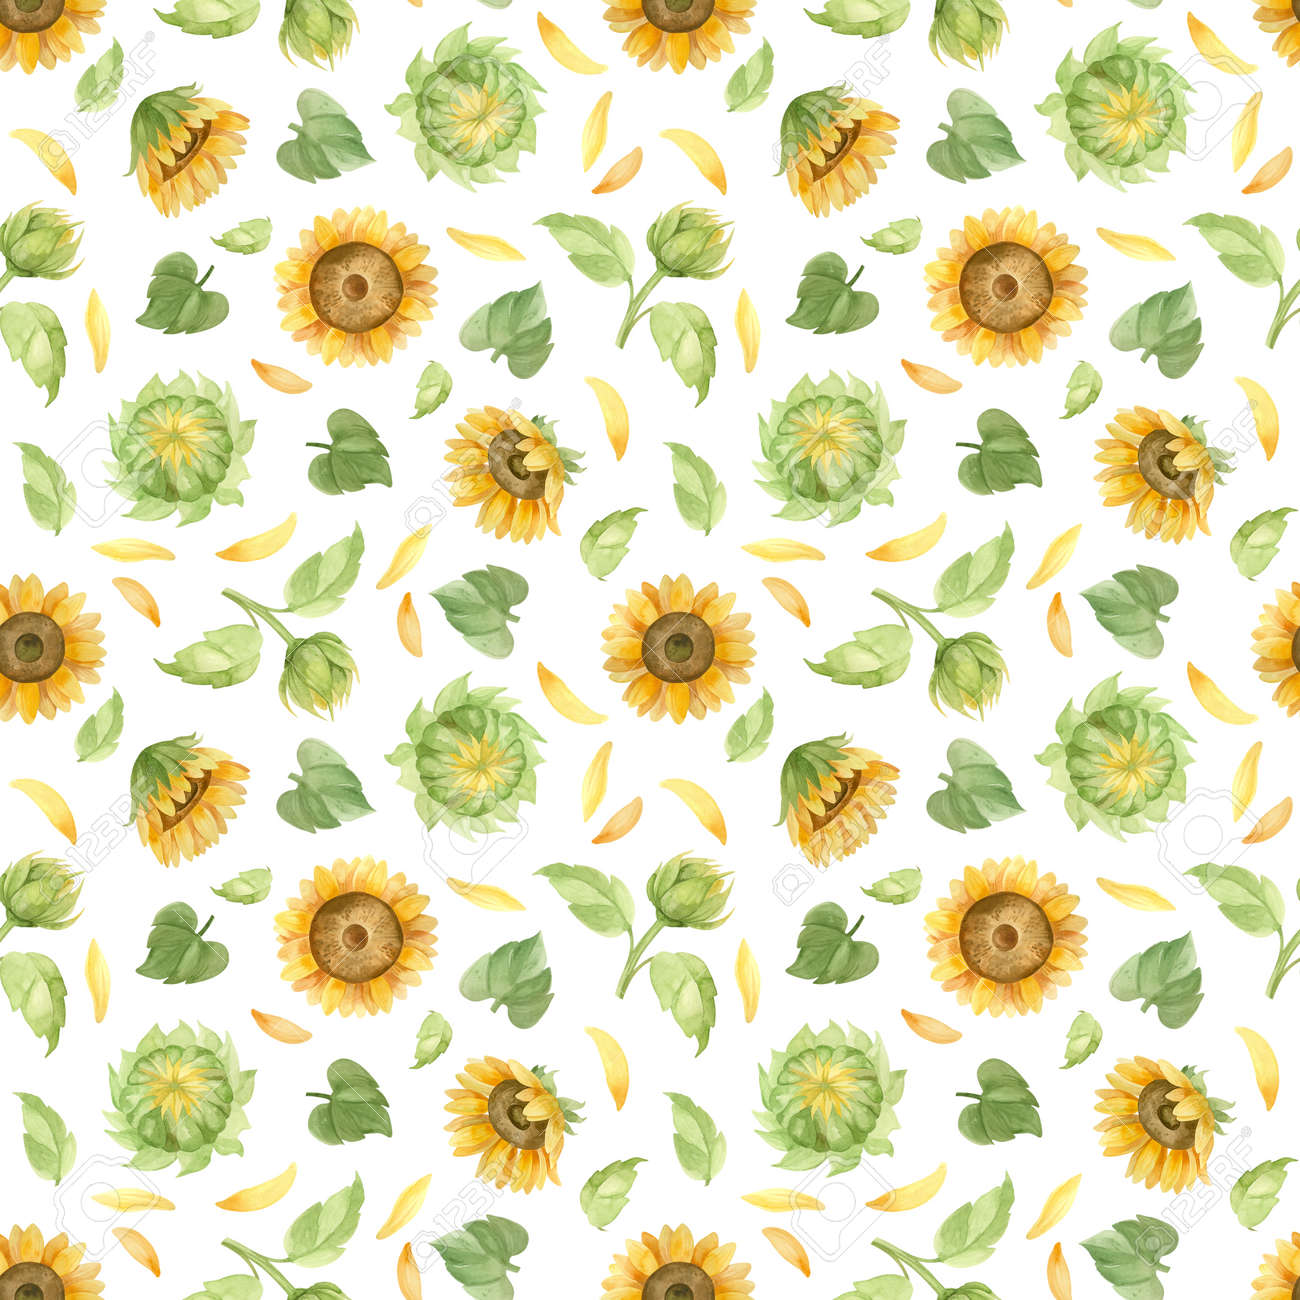 Sunflowers seamless pattern, watercolor clipart - 173083452